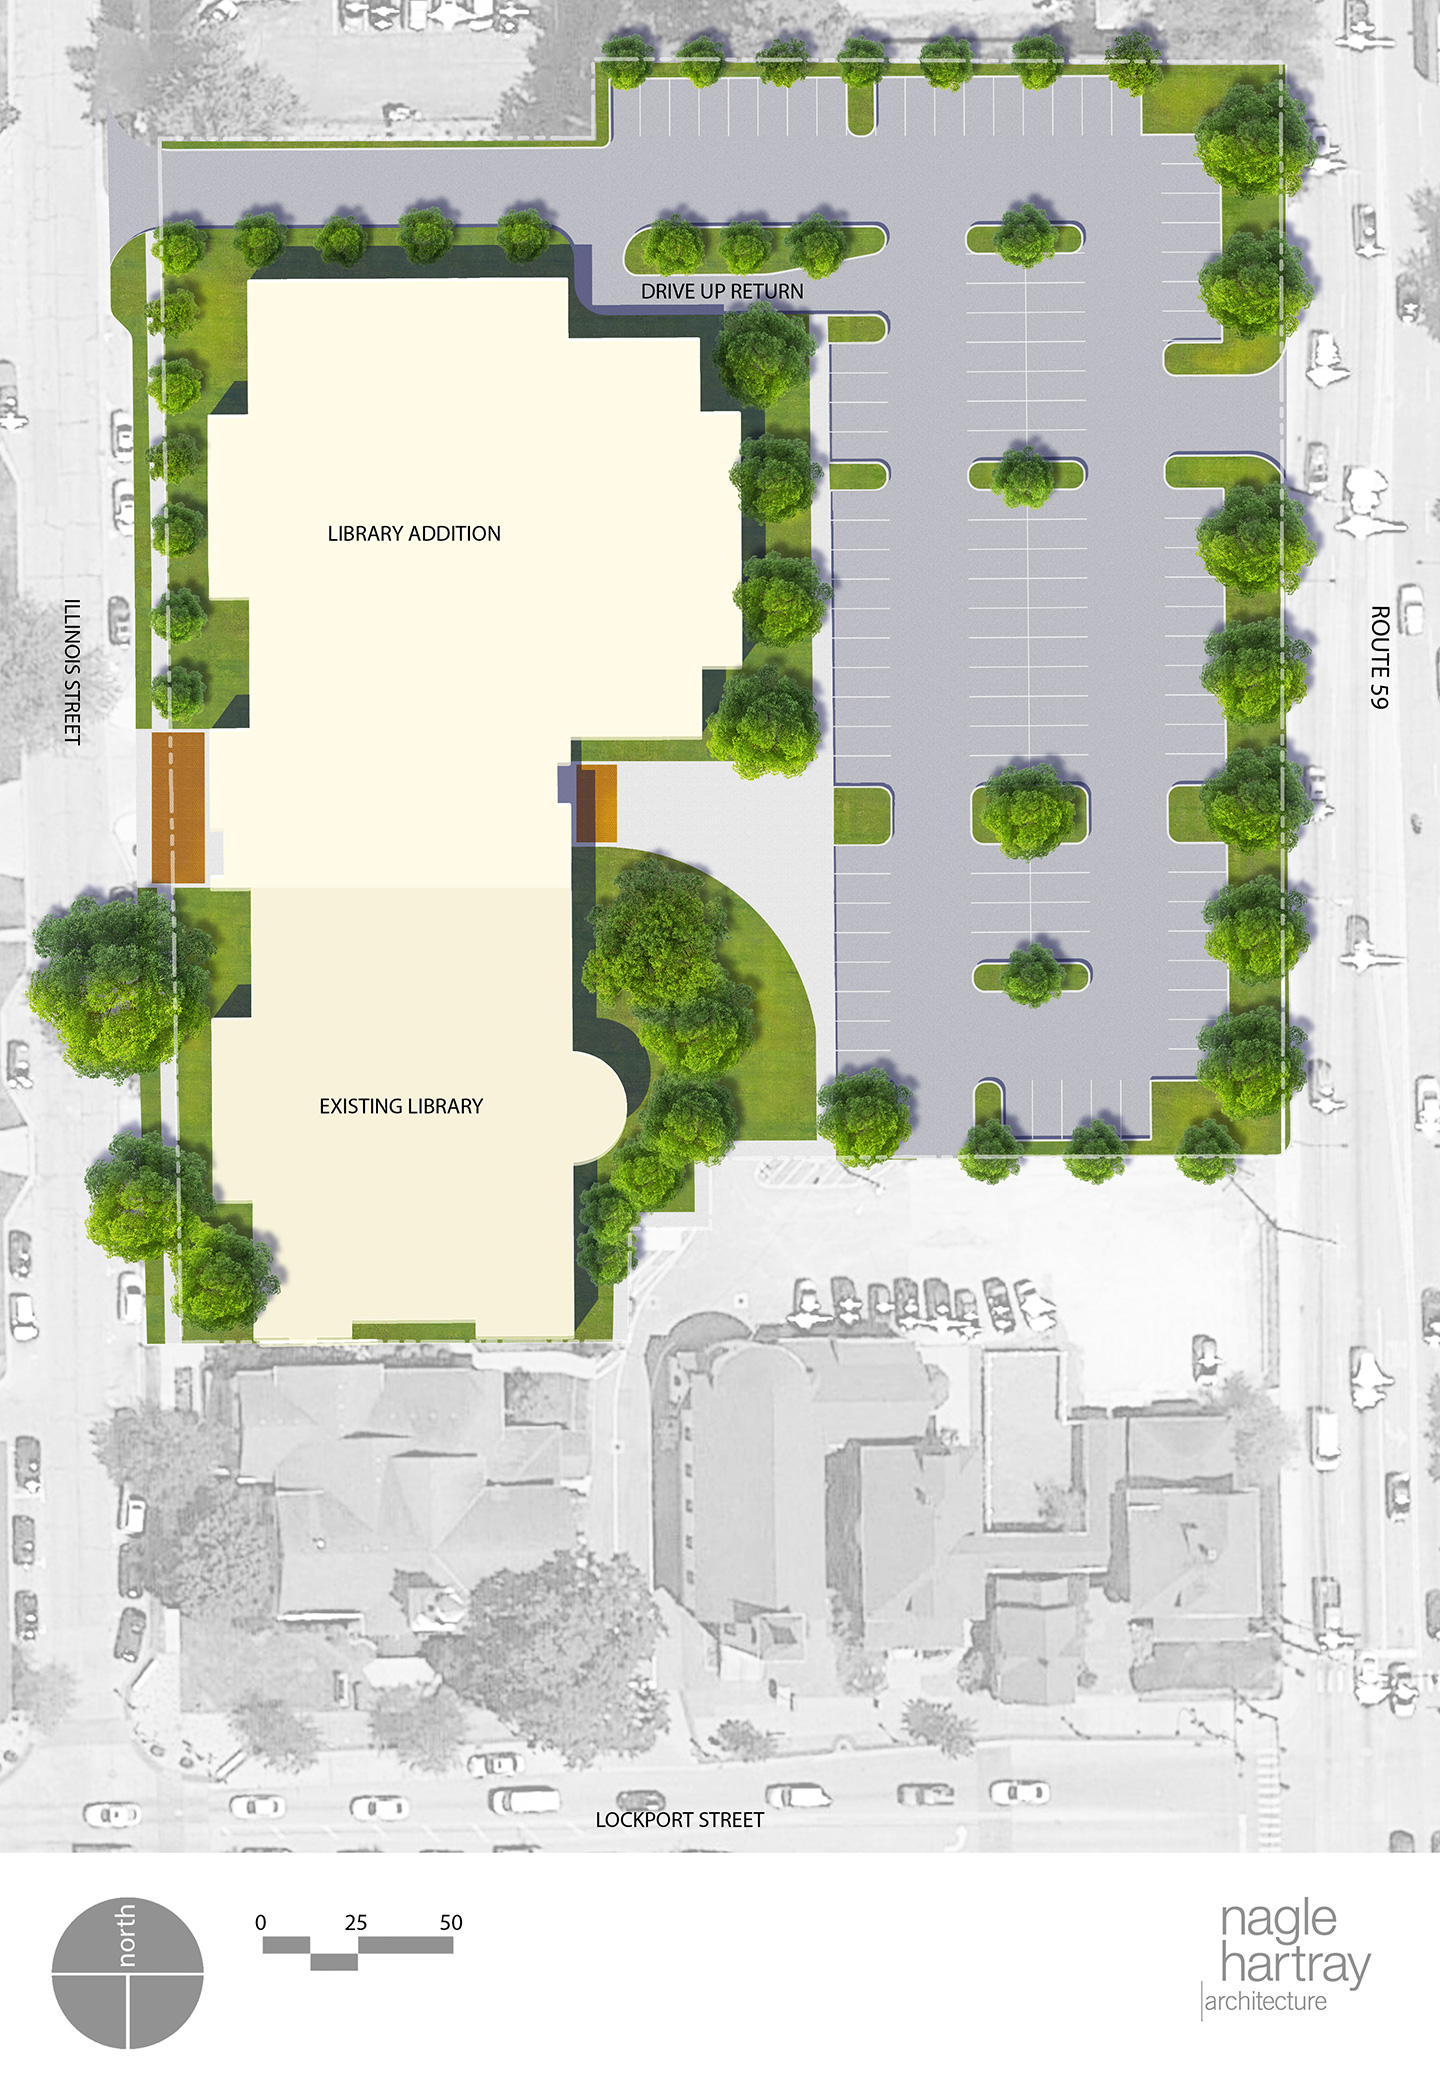 This Site Plan Shows The Current 27000 Square Foot Building And 23000 One Story Addition That Would Be Added On North End